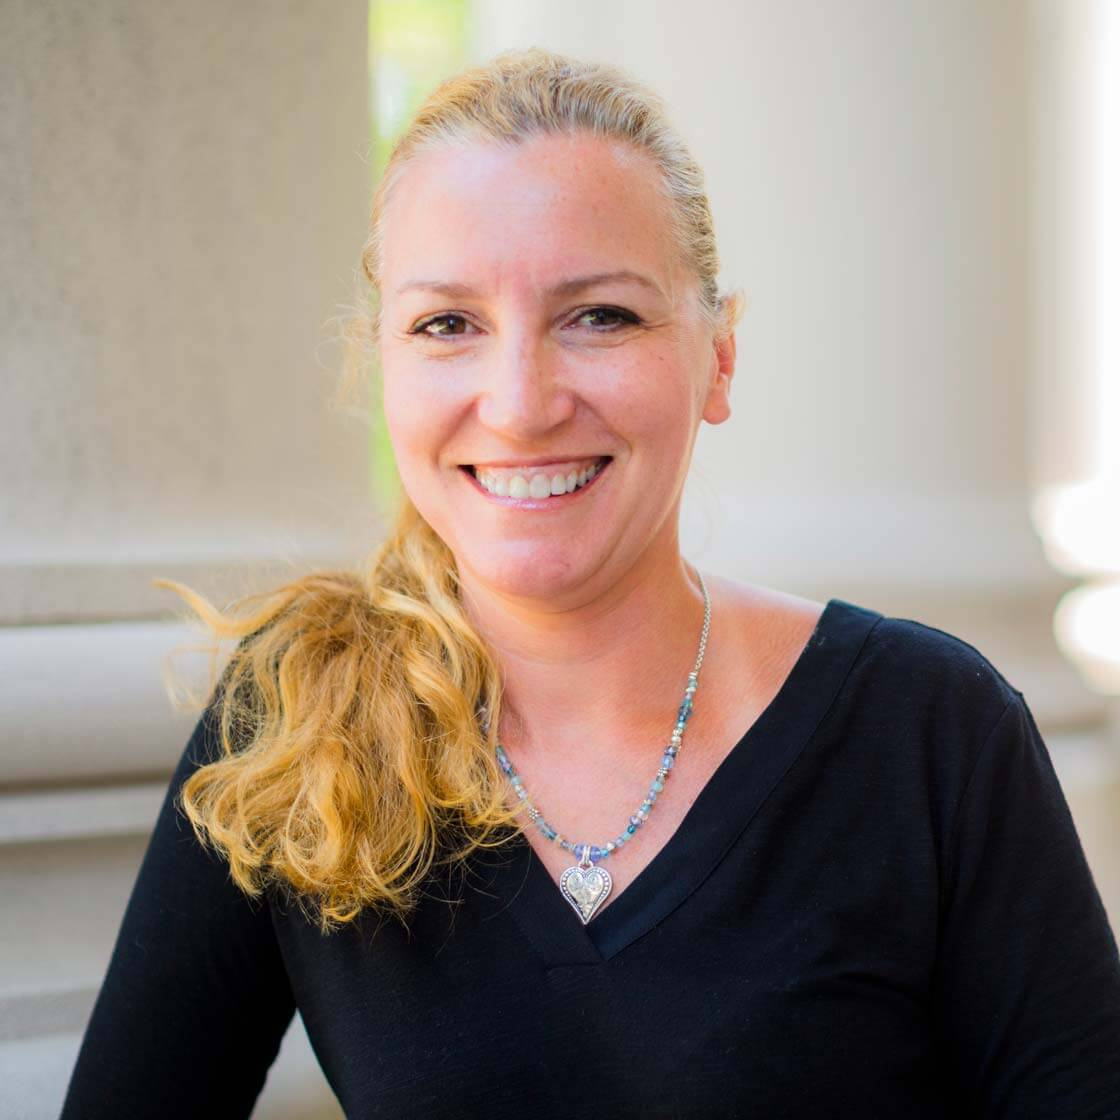 Photo of Kathryn A. Kloby, Ph.D.